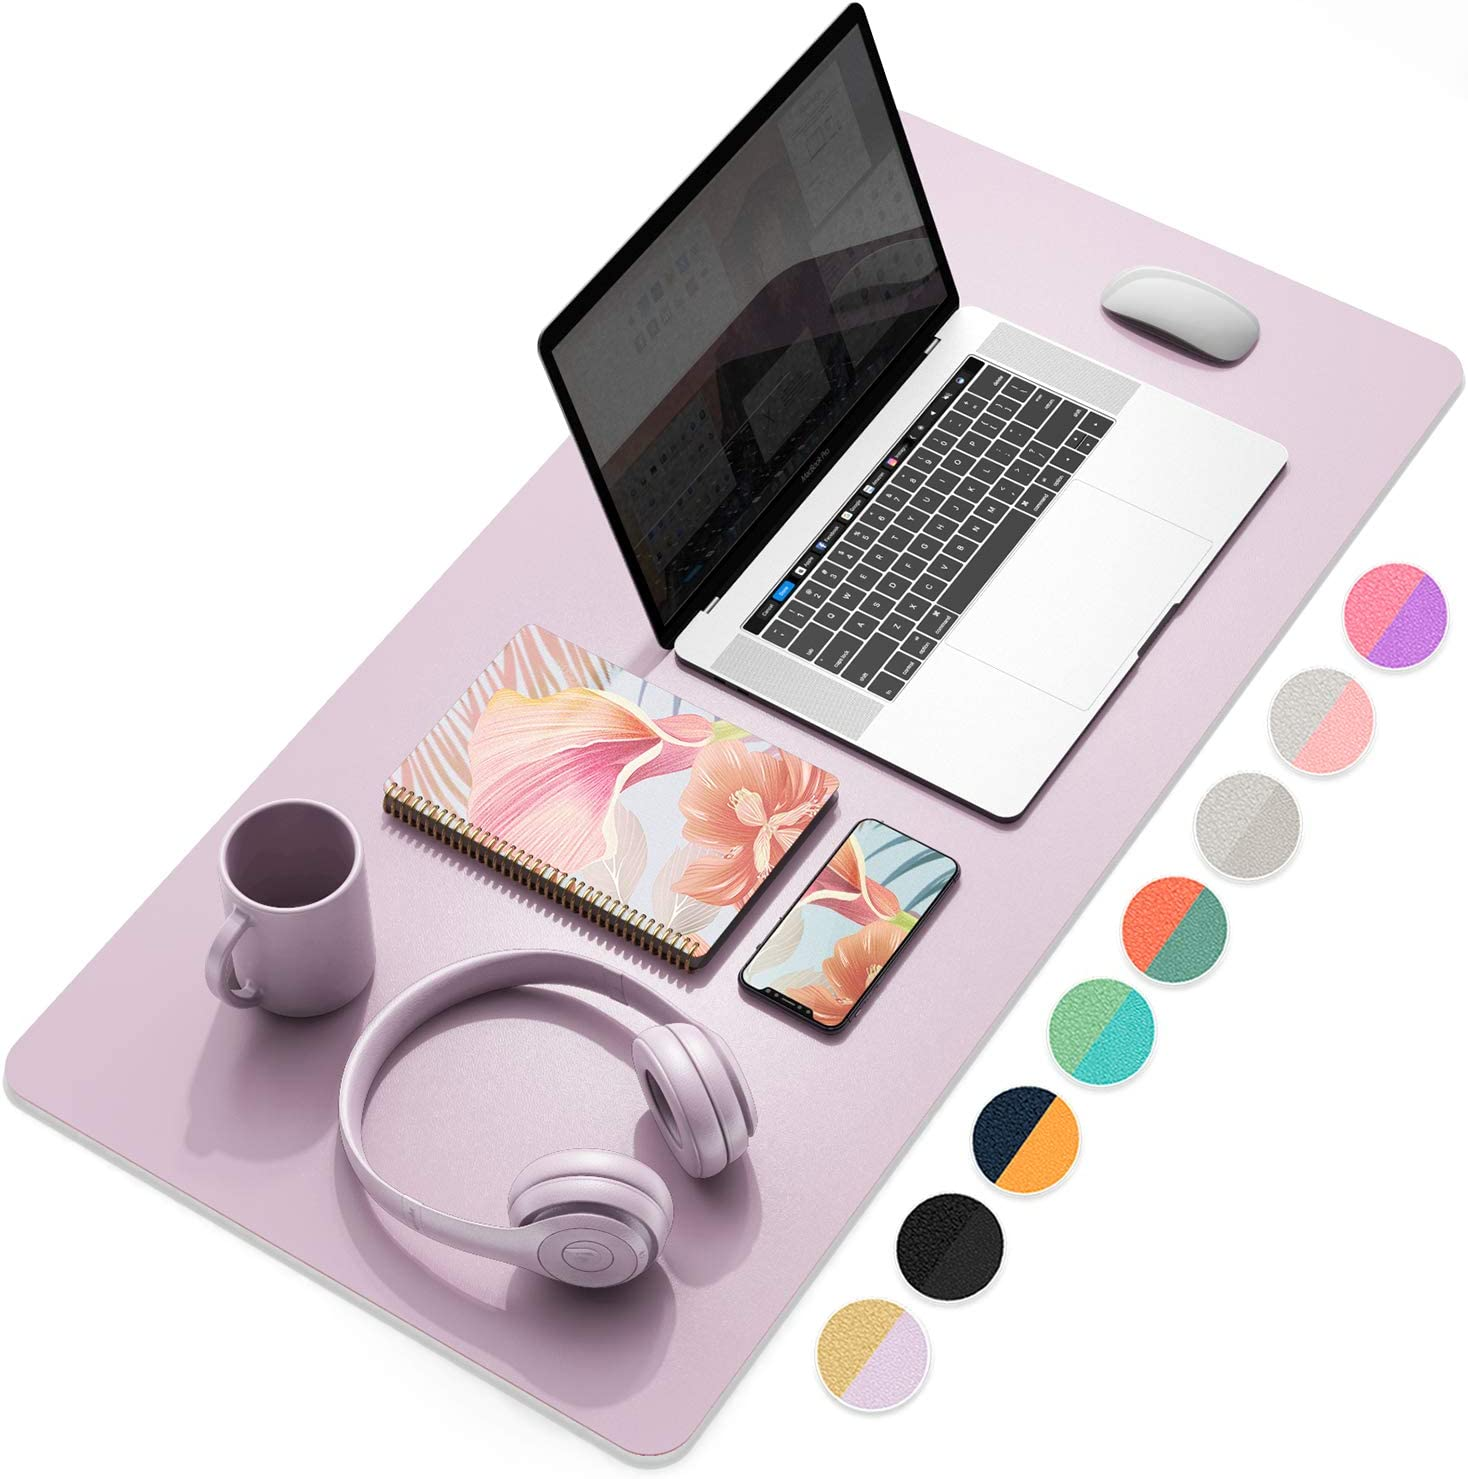 "YSAGi Multifunctional Office Desk Pad, Ultra Thin Waterproof PU Leather Mouse Pad, Dual Use Desk Writing Mat for Office/Home (31.5"" x 15.7"", Grayish Lavendar+Cinnamon Buff)"